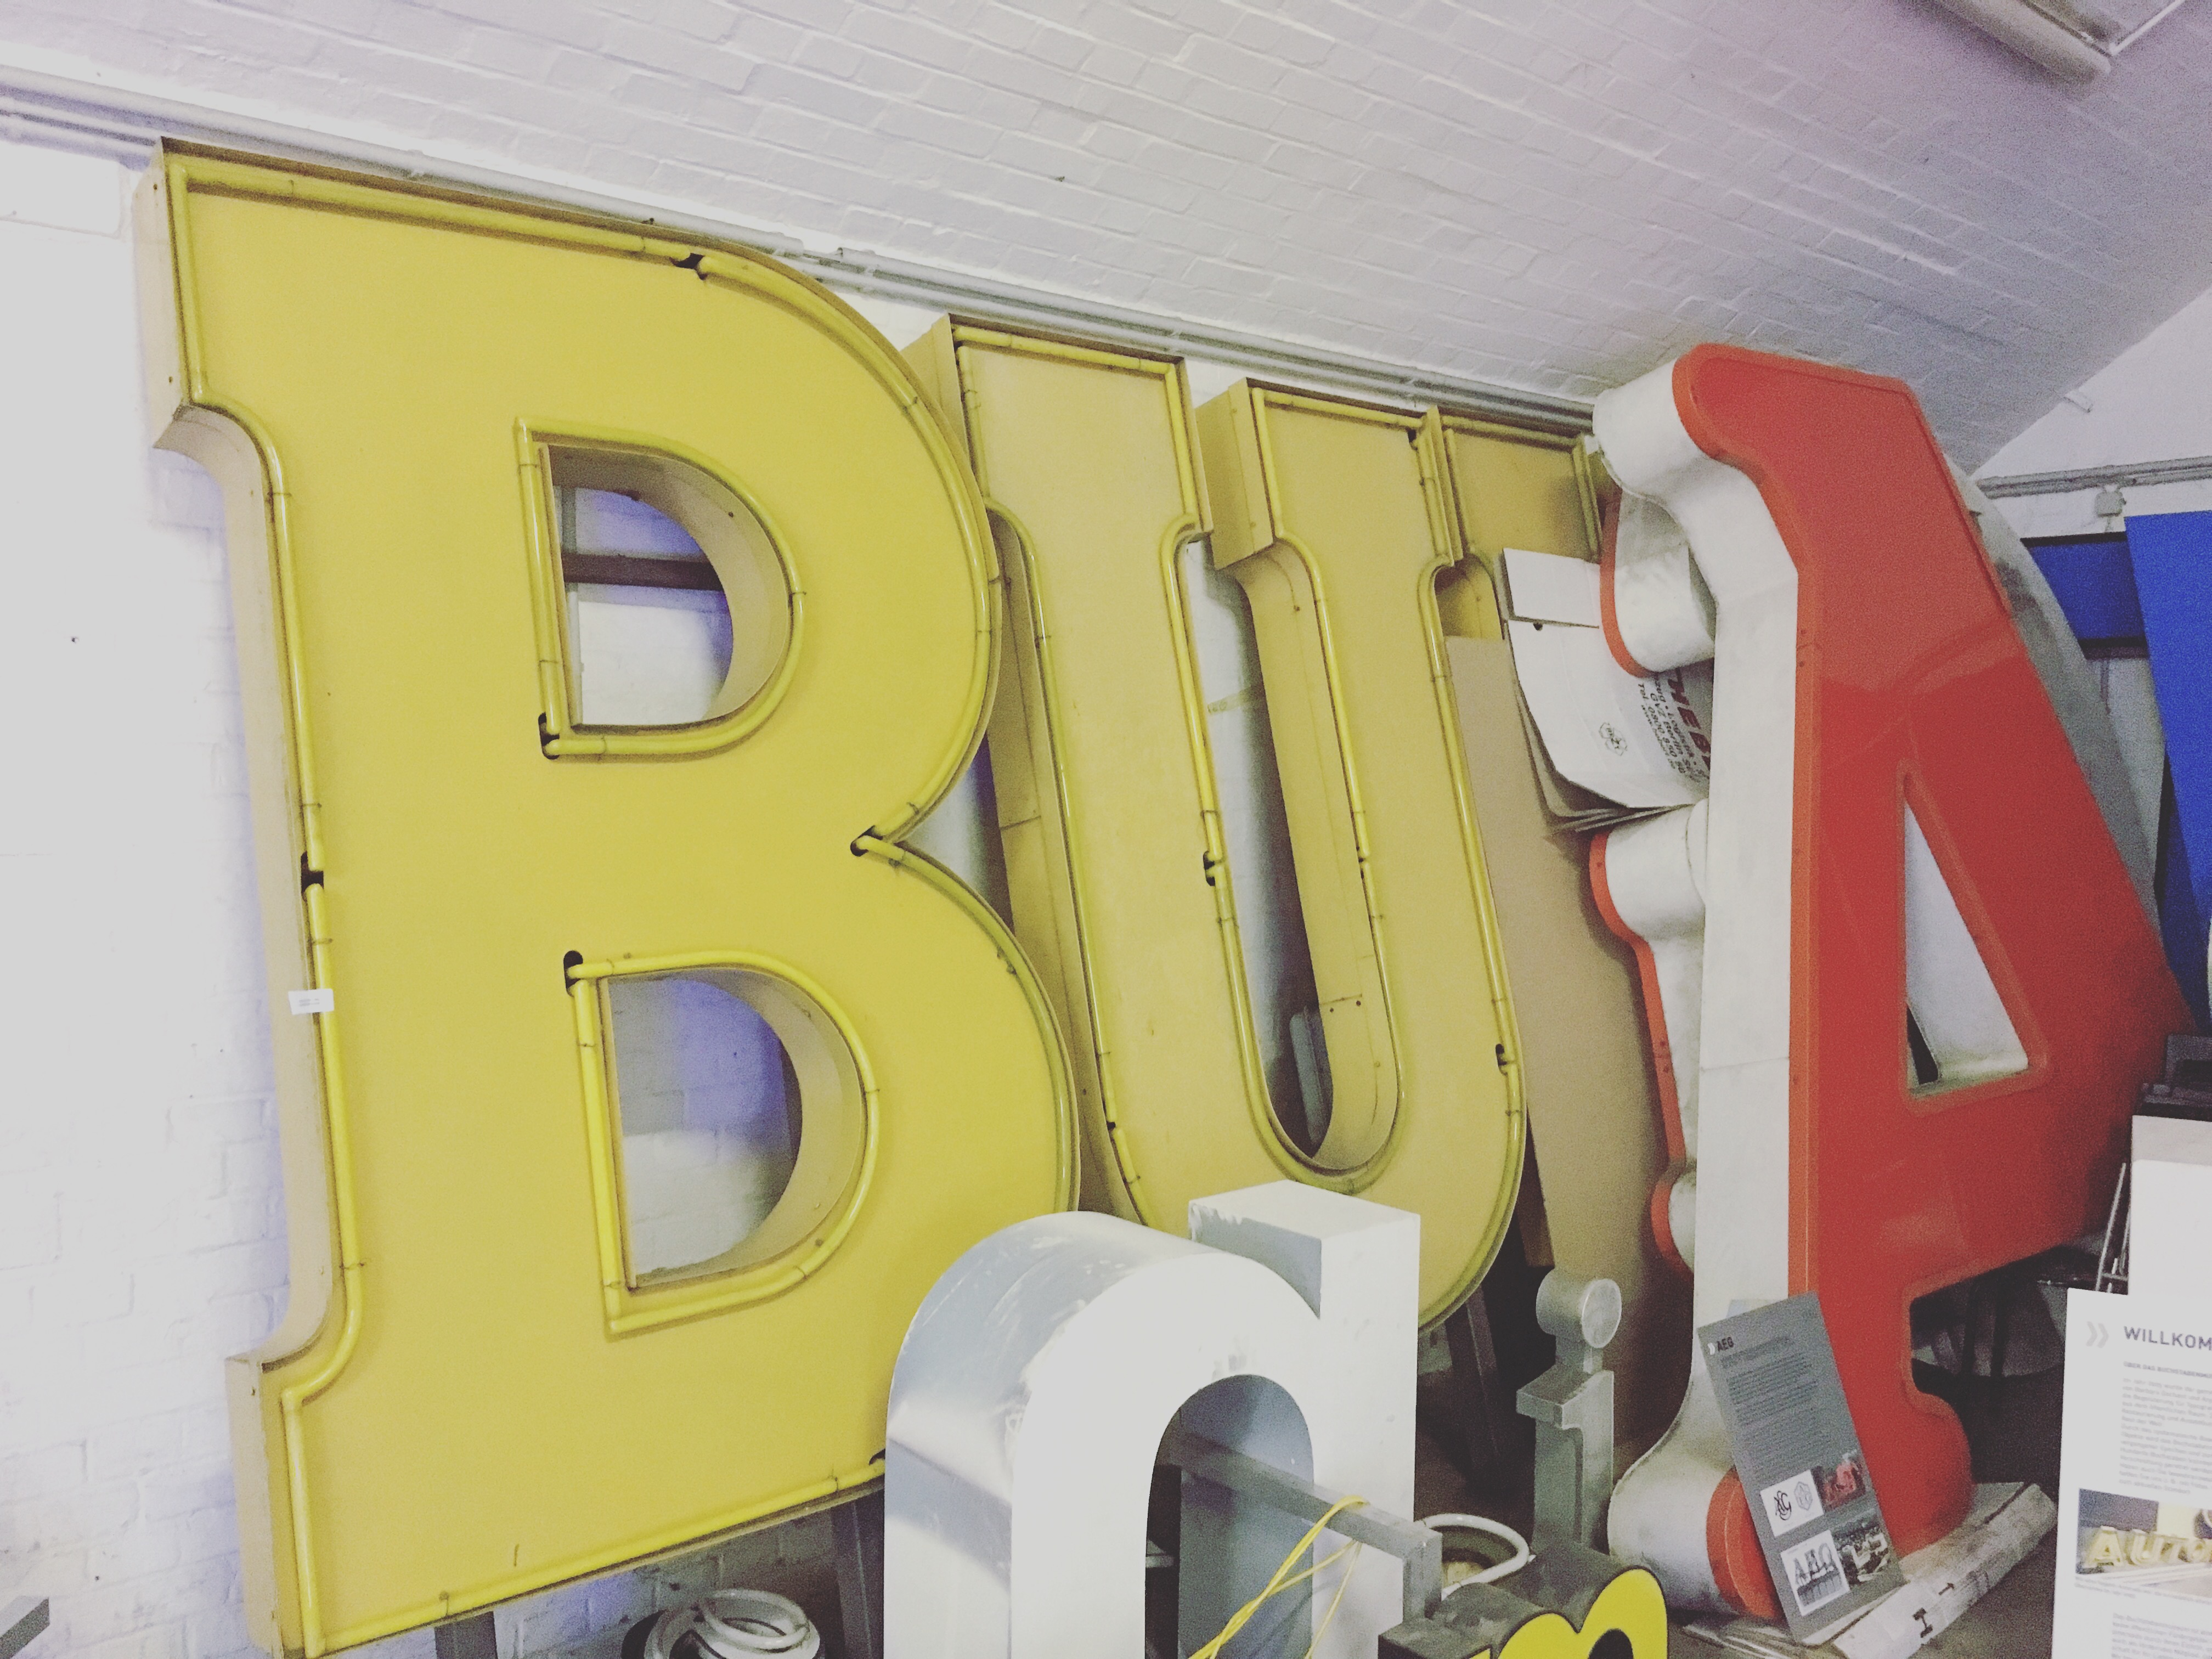 Buchstabenmuseum Berlin (Typography Museum) – 1000 letters over 1000 square meters